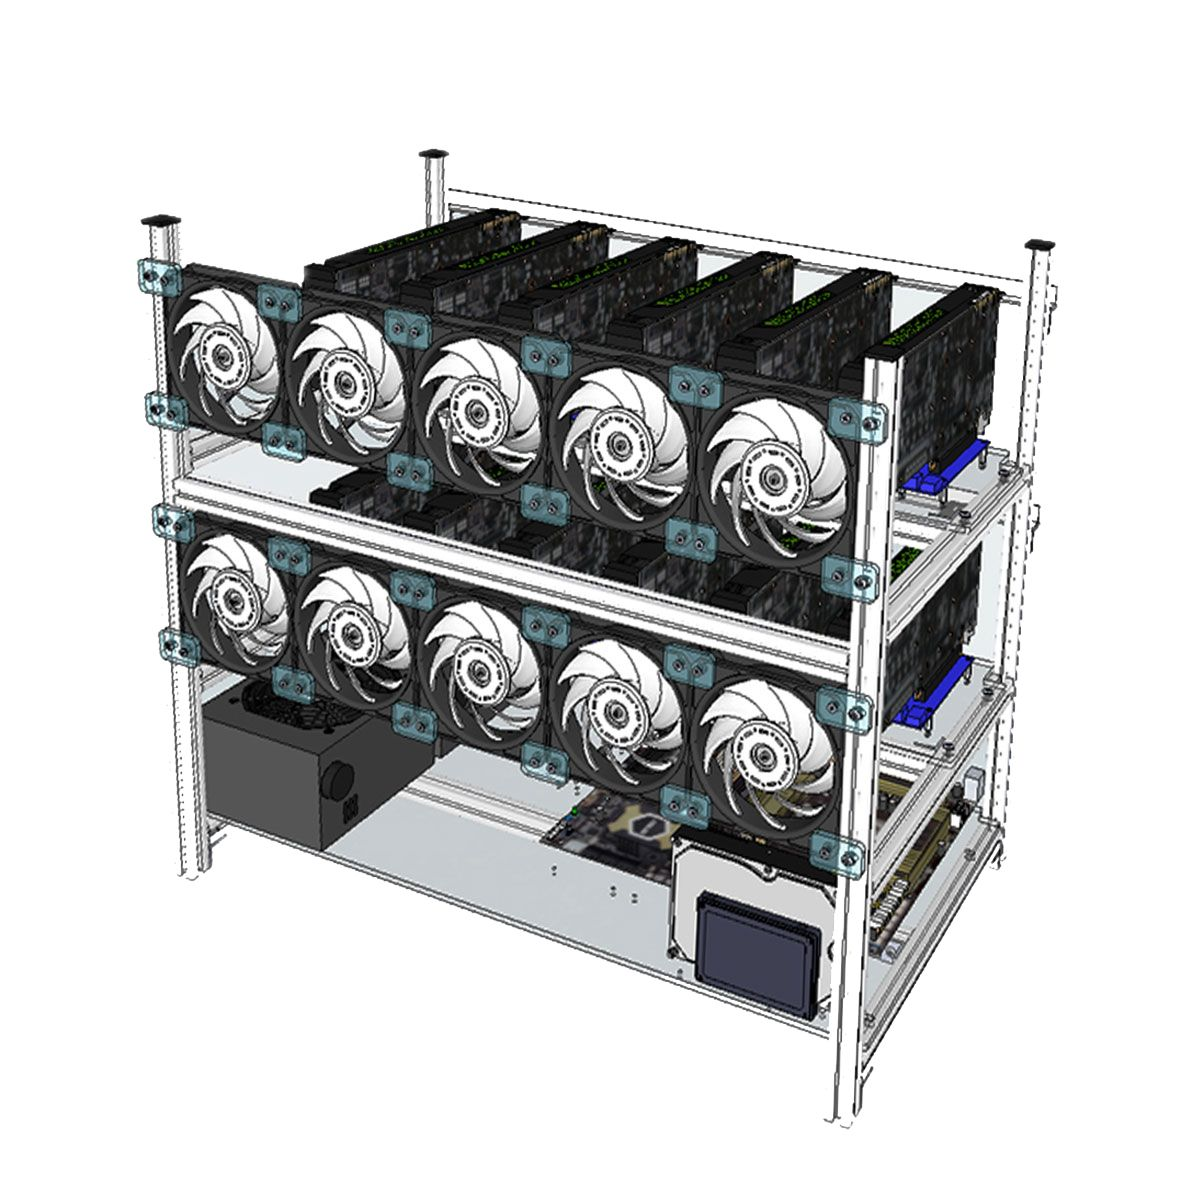 Aluminum Open Air Mining Rig Stackable Frame Case With 10 Led Fans For 12 Gpu Eth Computer Components From Computers Office On Banggood Com Green Led Led Ebay